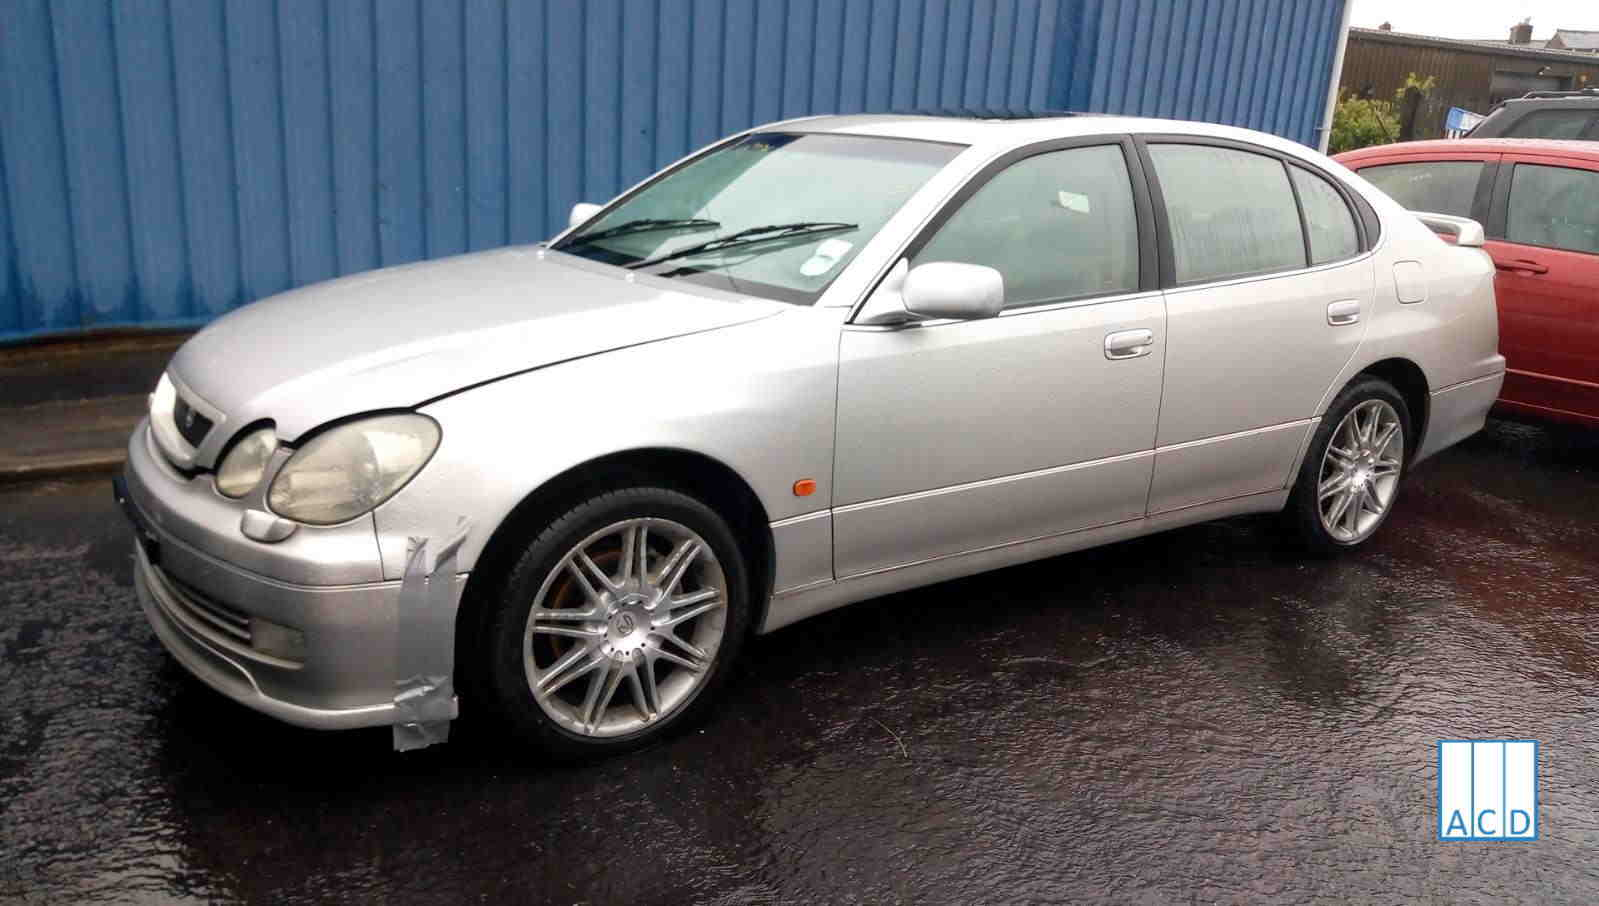 Lexus GS430 SE 4.3L Petrol 5-Speed Automatic 2000 #3090 01